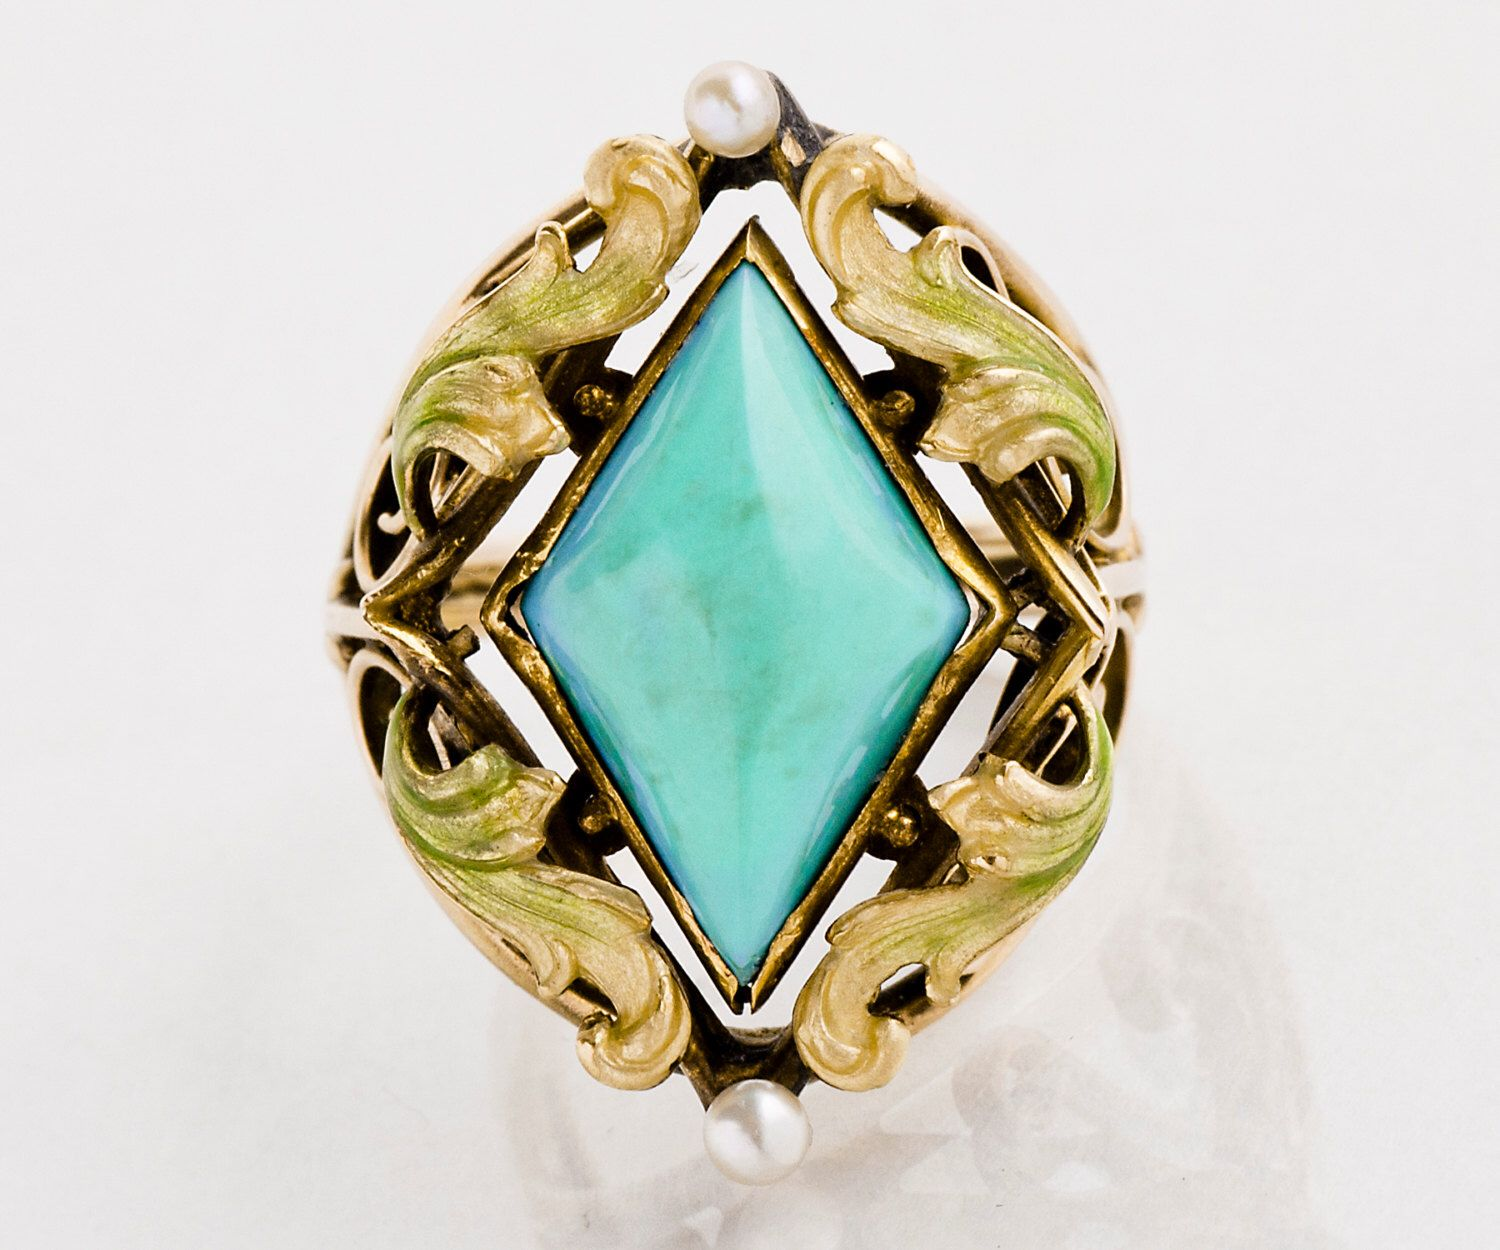 Antique Ring - Antique Art Nouveau 14k Rose Gold Turquoise and Enamel Ring by TheCopperCanary on Etsy https://www.etsy.com/listing/108201918/antique-ring-antique-art-nouveau-14k